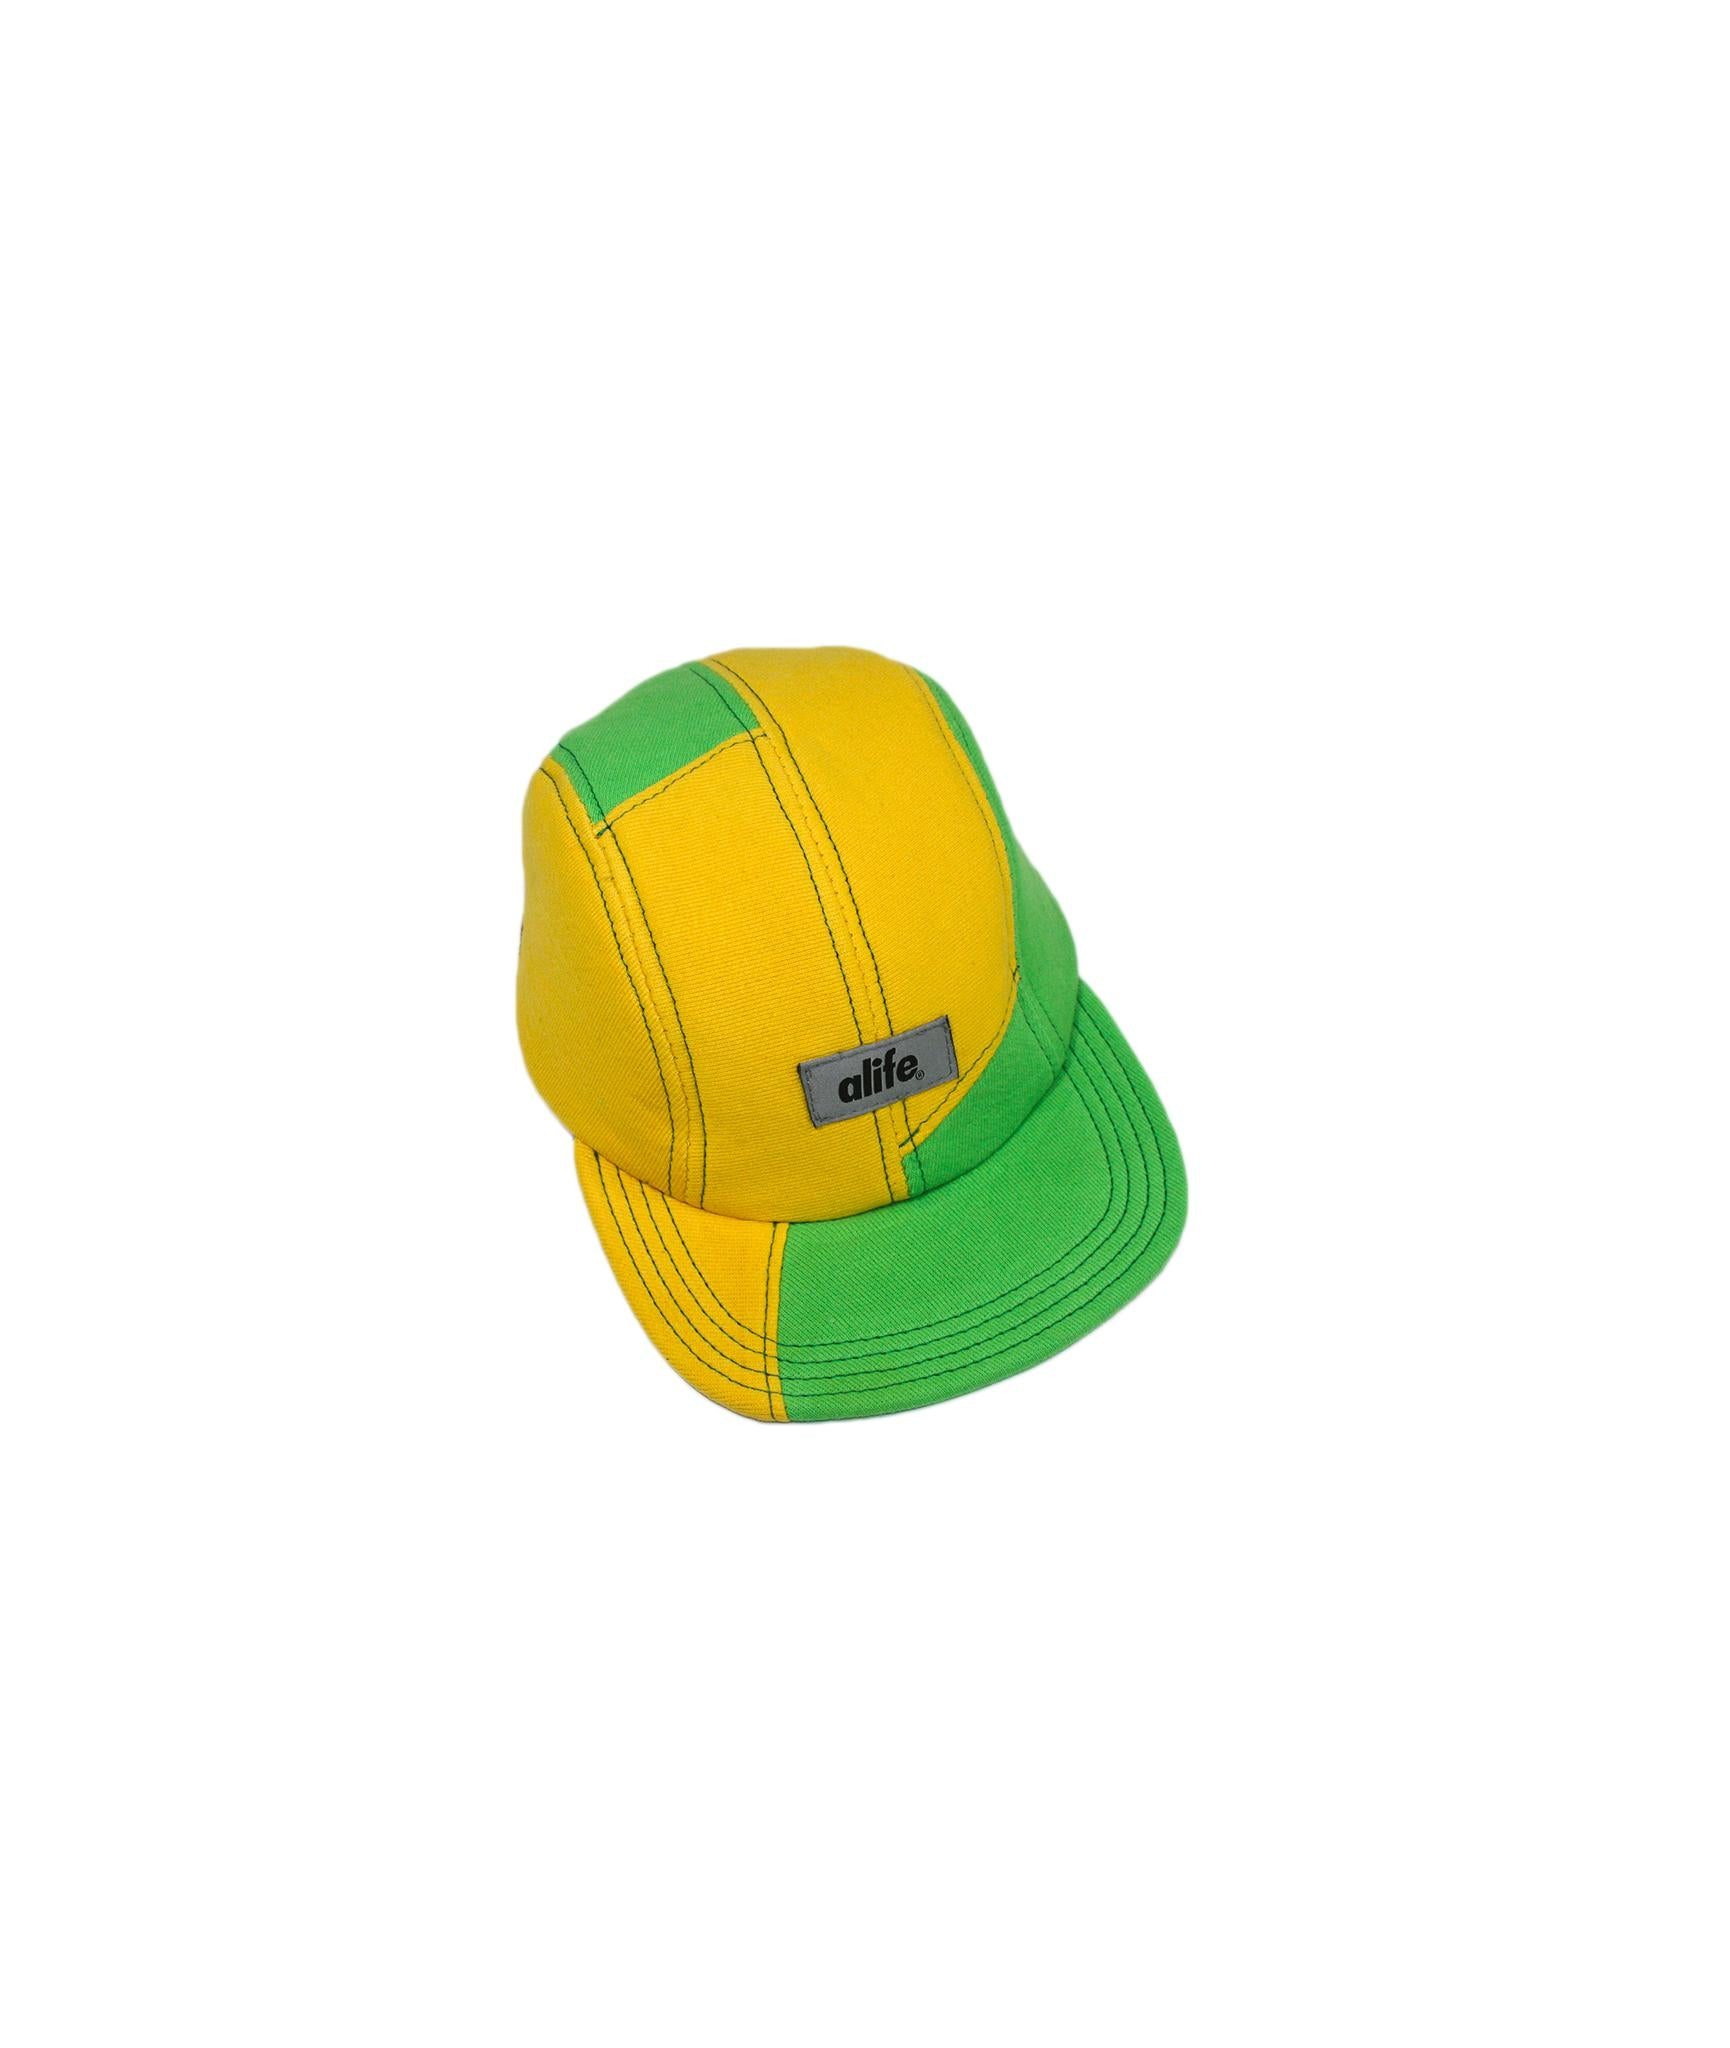 Alife Upcycle Hat - Rubber Patch Crewneck - Yellow/Green